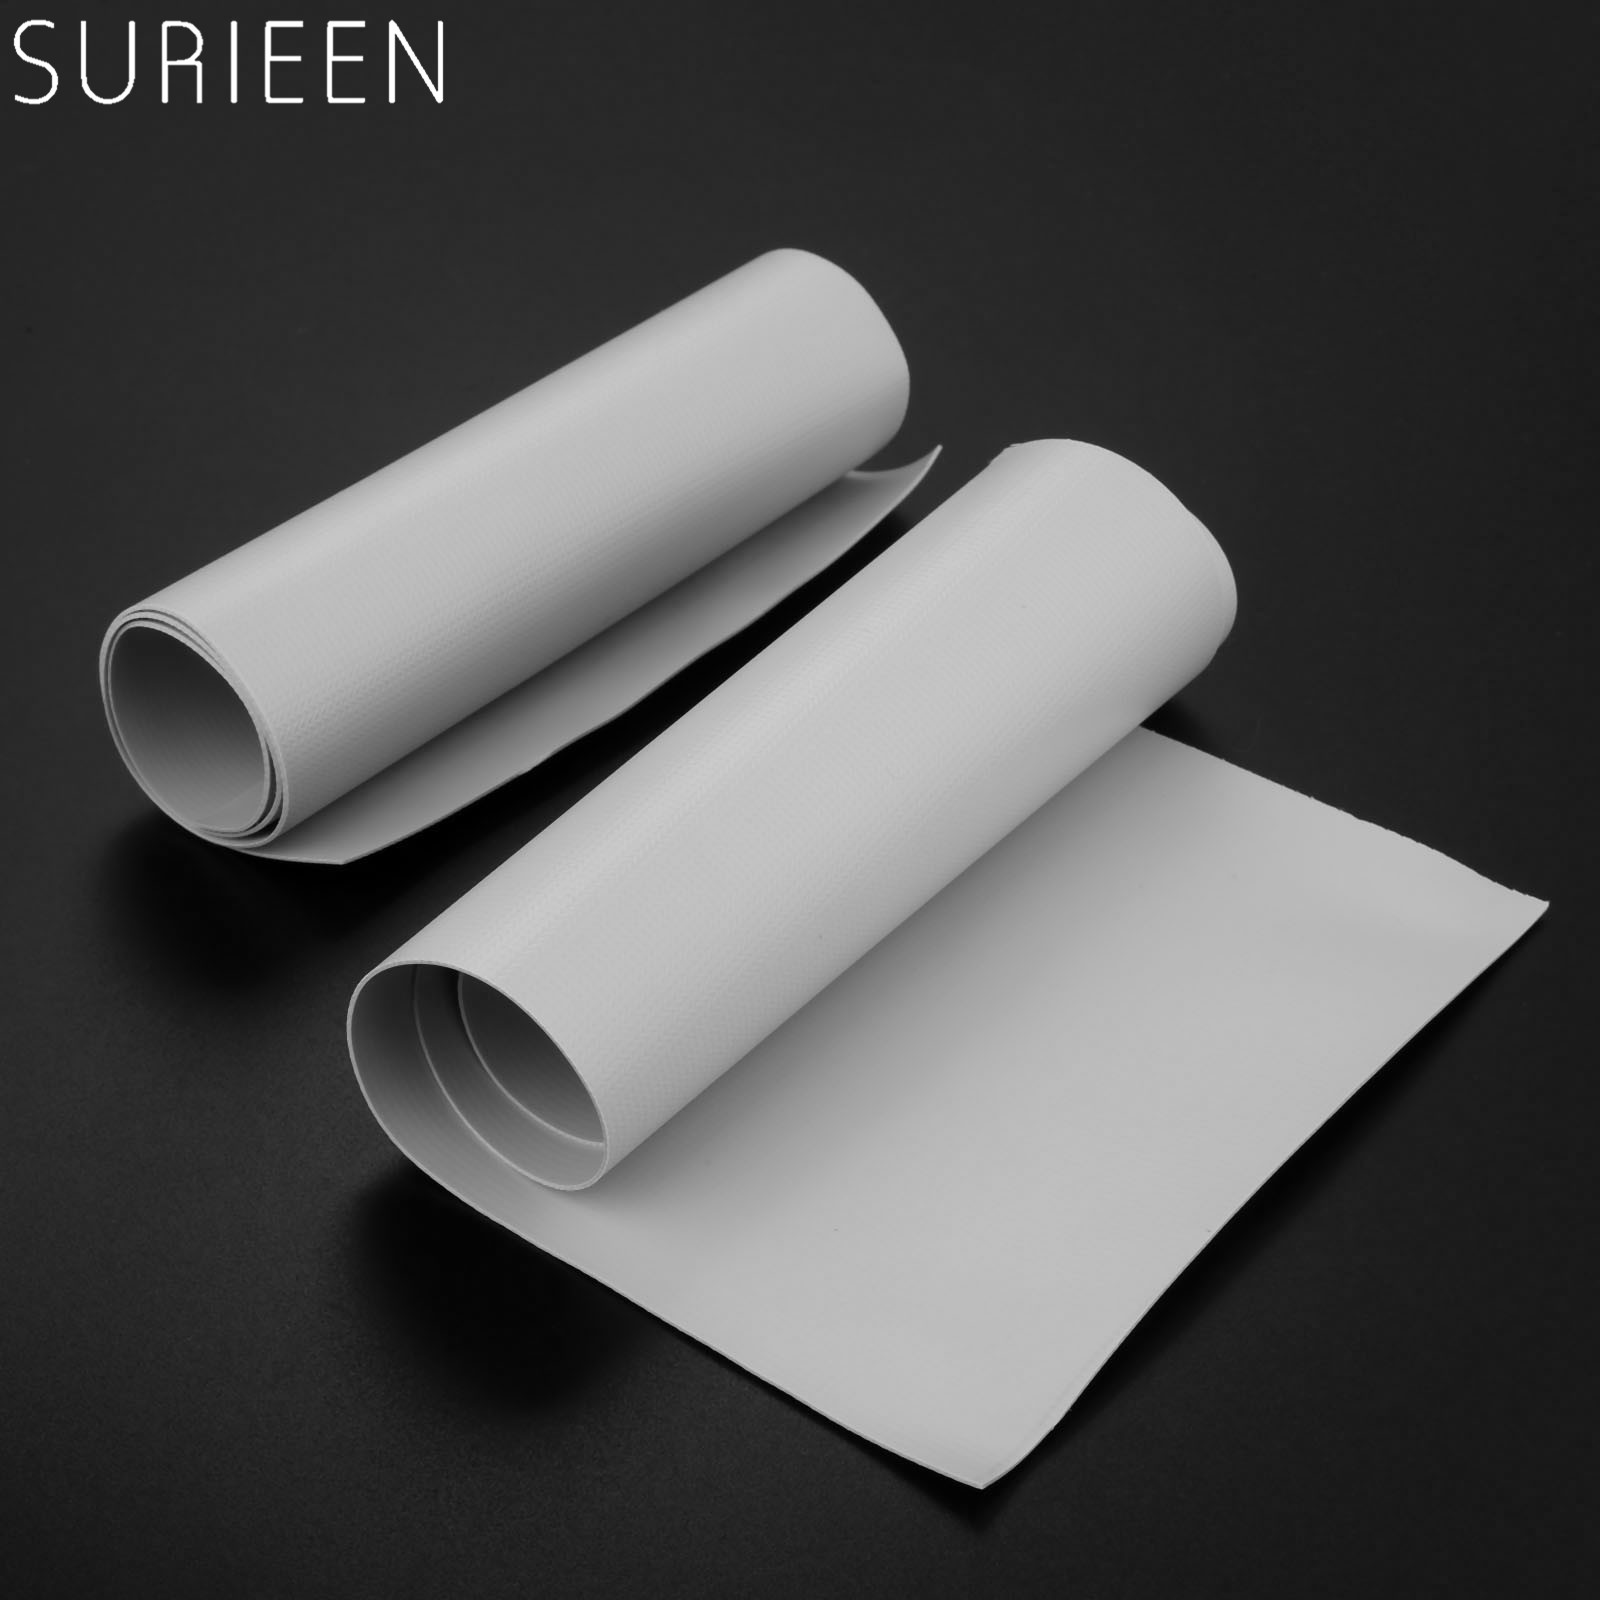 1 Roll 370*150mm Gray Inflatable Boats Kayak Canoe Special Damaged Leaking Hole PVC Repair Patch Kit Glued Waterproof Patch Tool